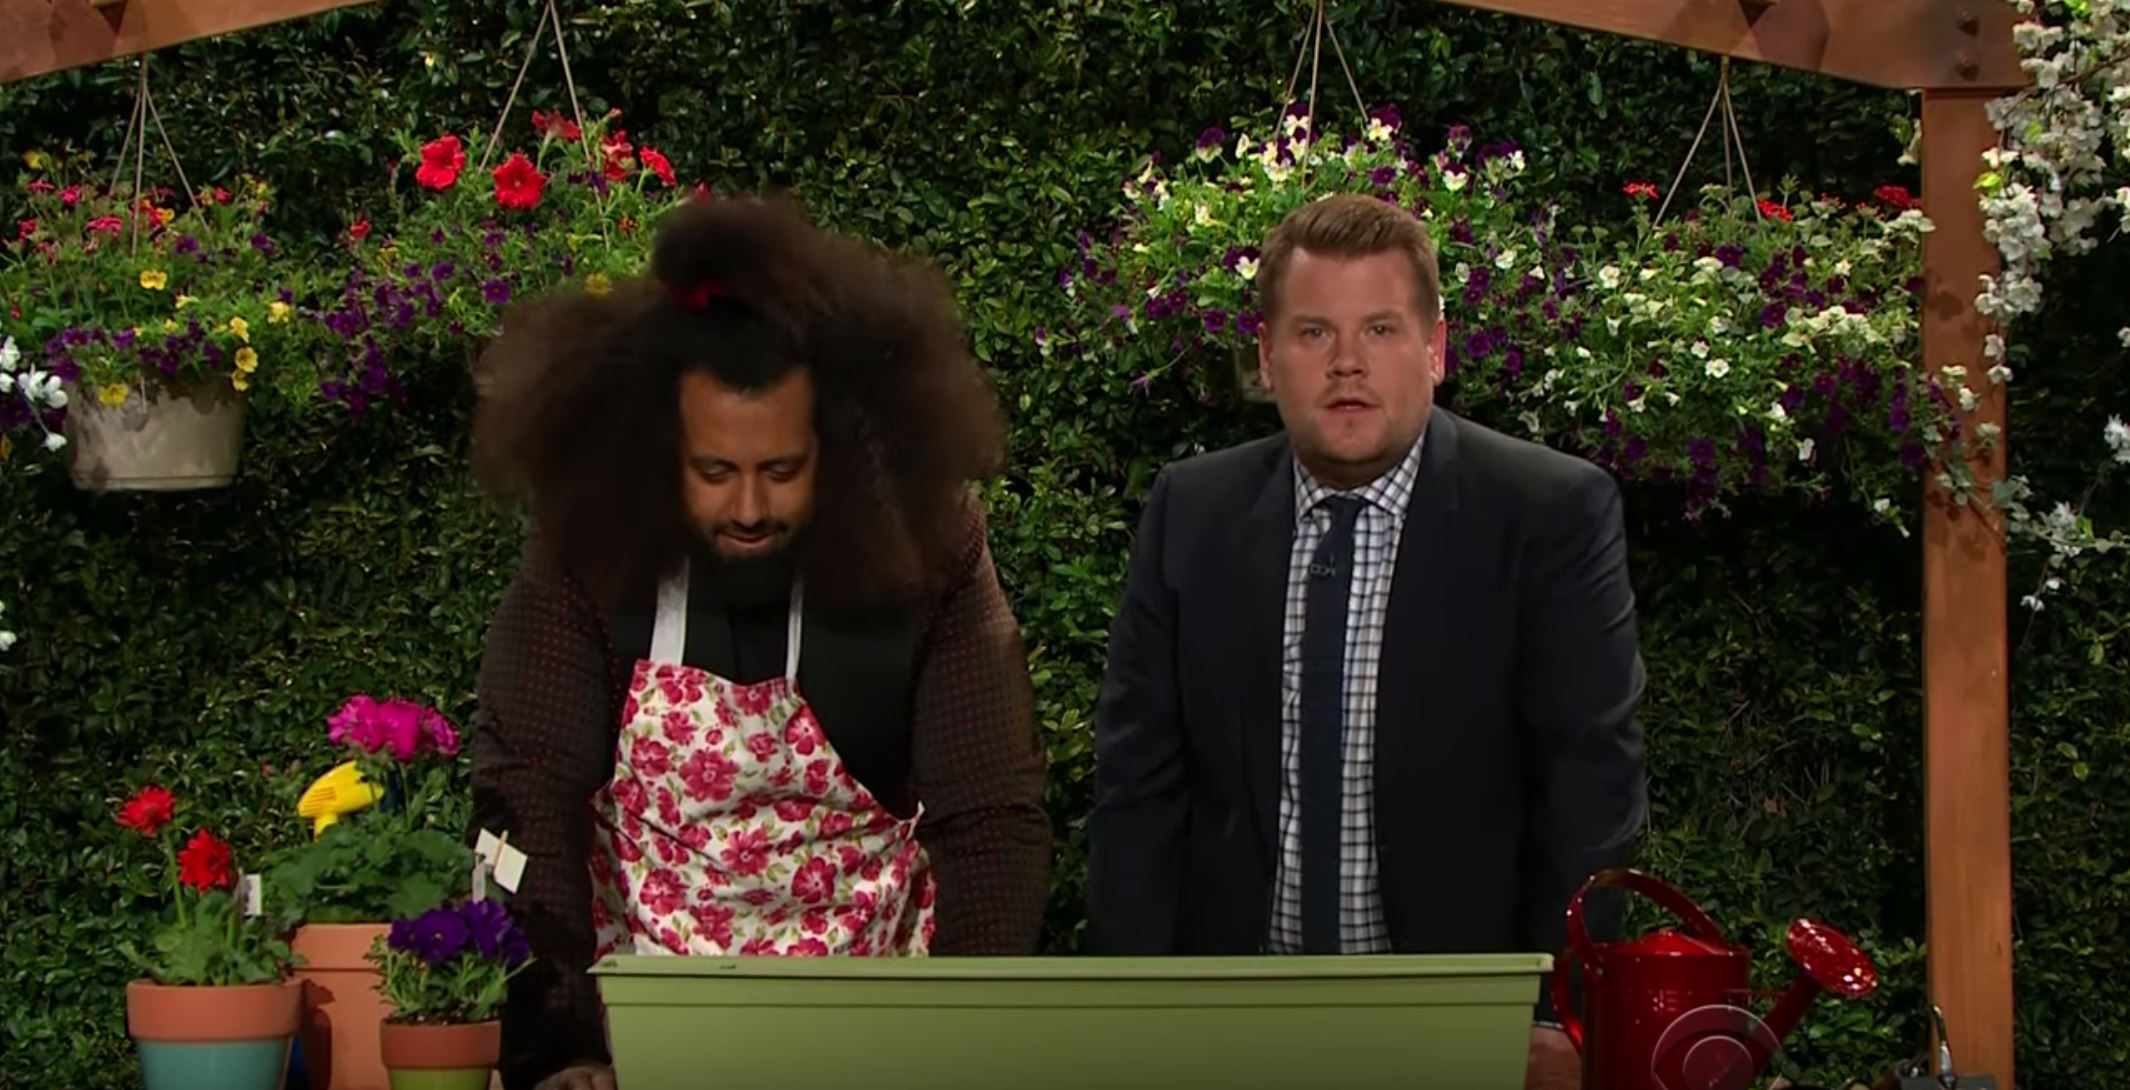 Reggie Watts is excited to walk James Corden through a gardening demo